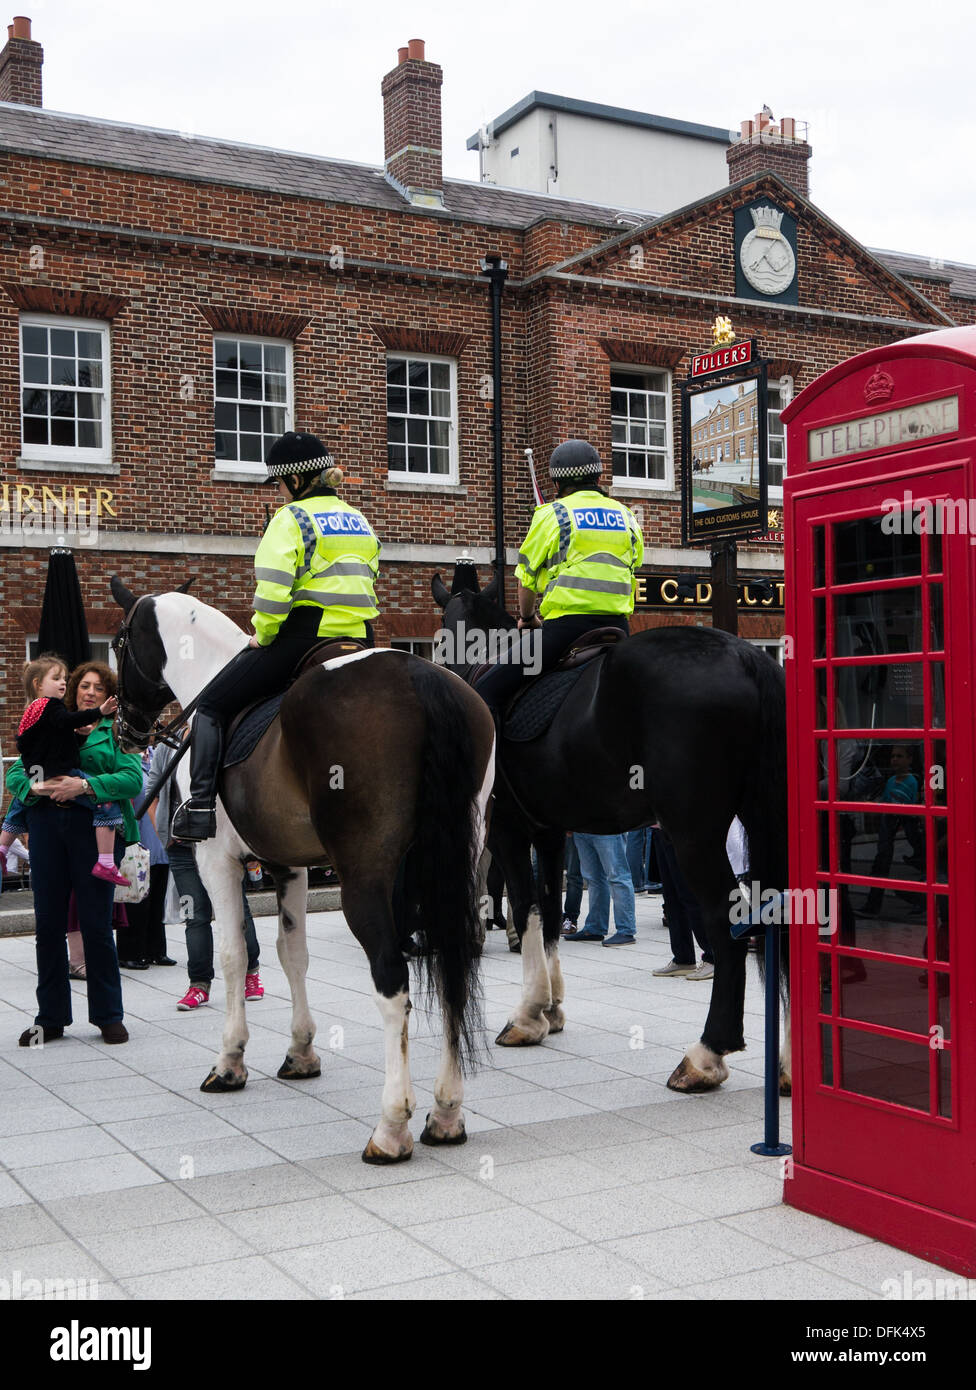 Two mounted police officers on horseback in front of a typical English pub and a red telephone box - Stock Image